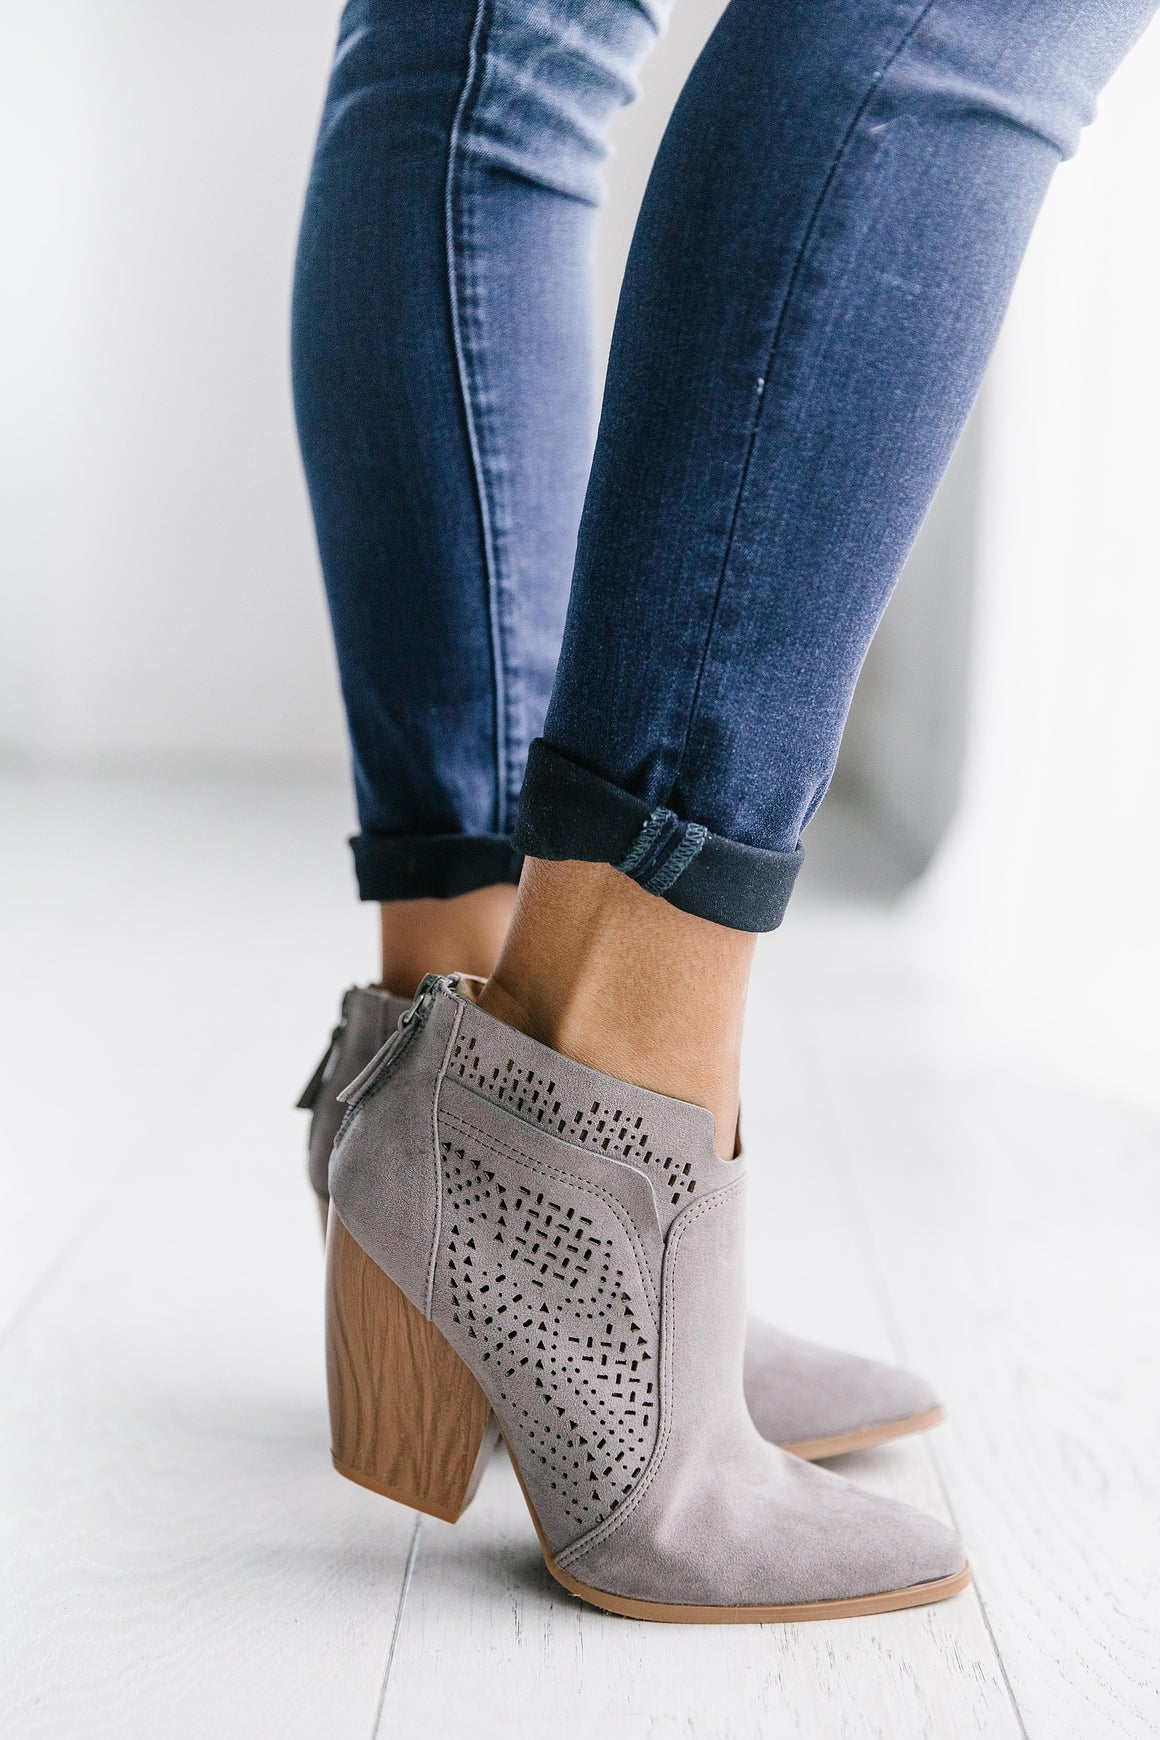 STANLEY SUEDE BOOTIE IN GREY